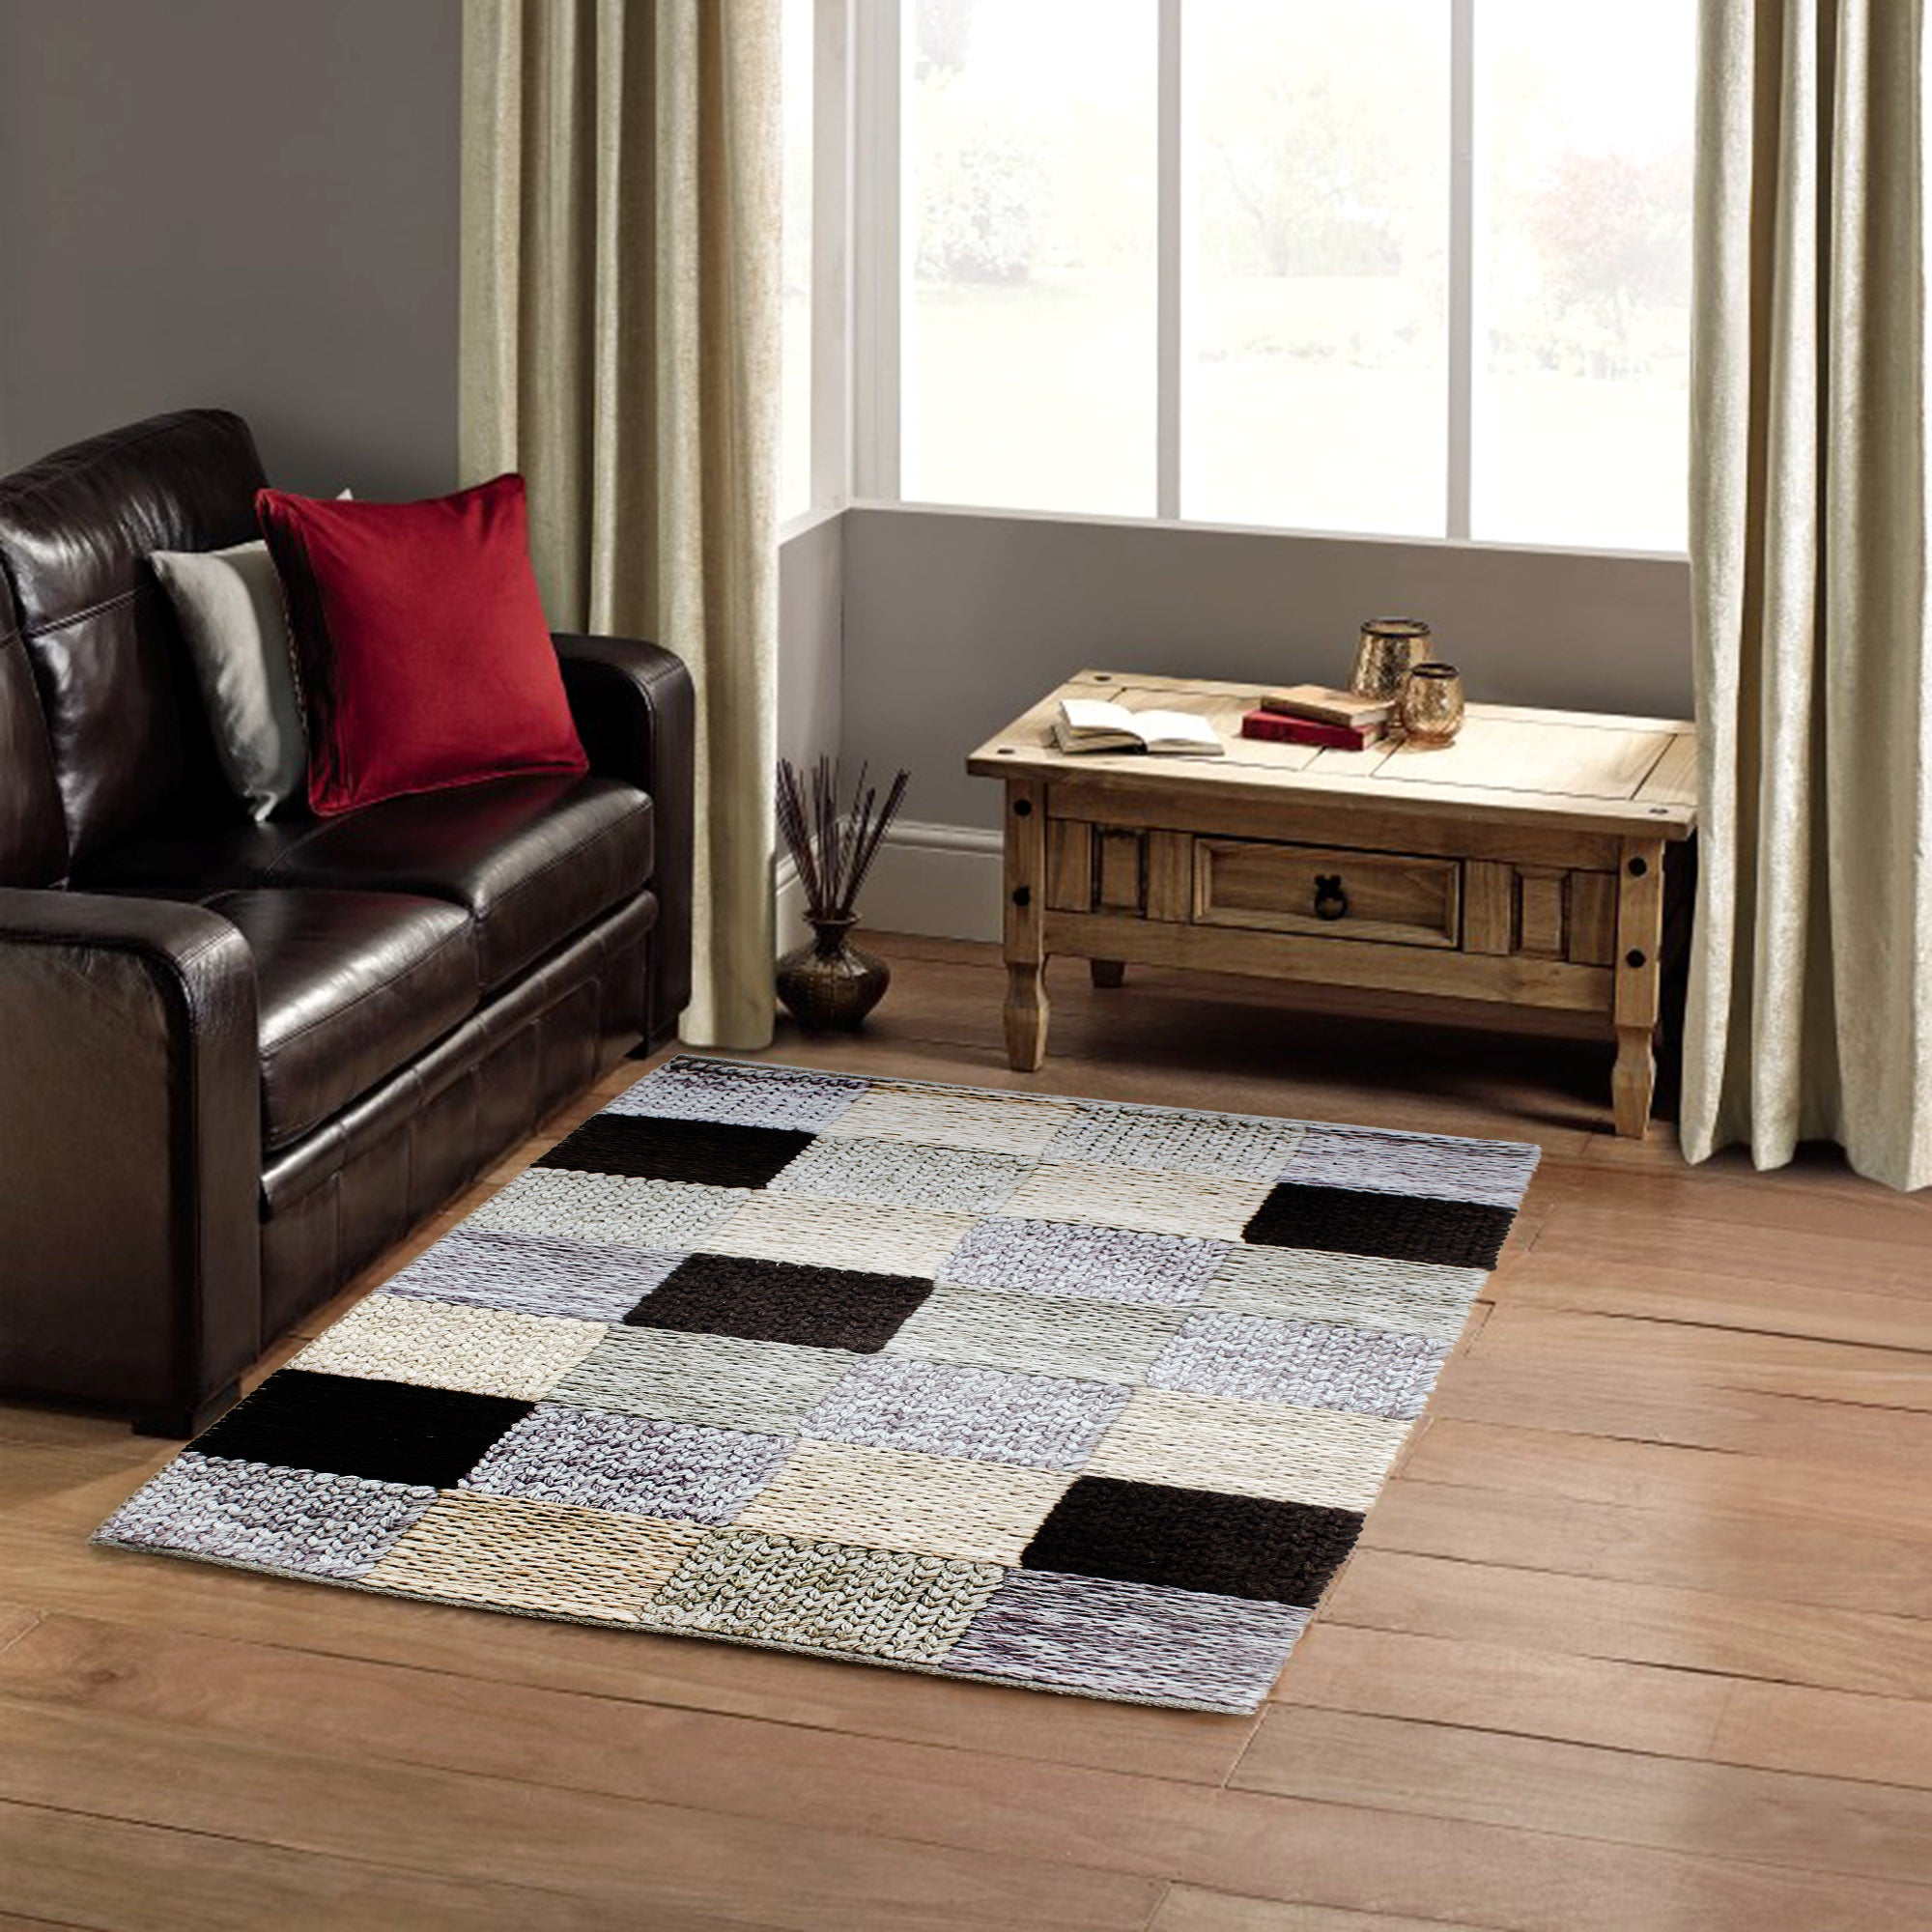 Cable Knit Wool Rug